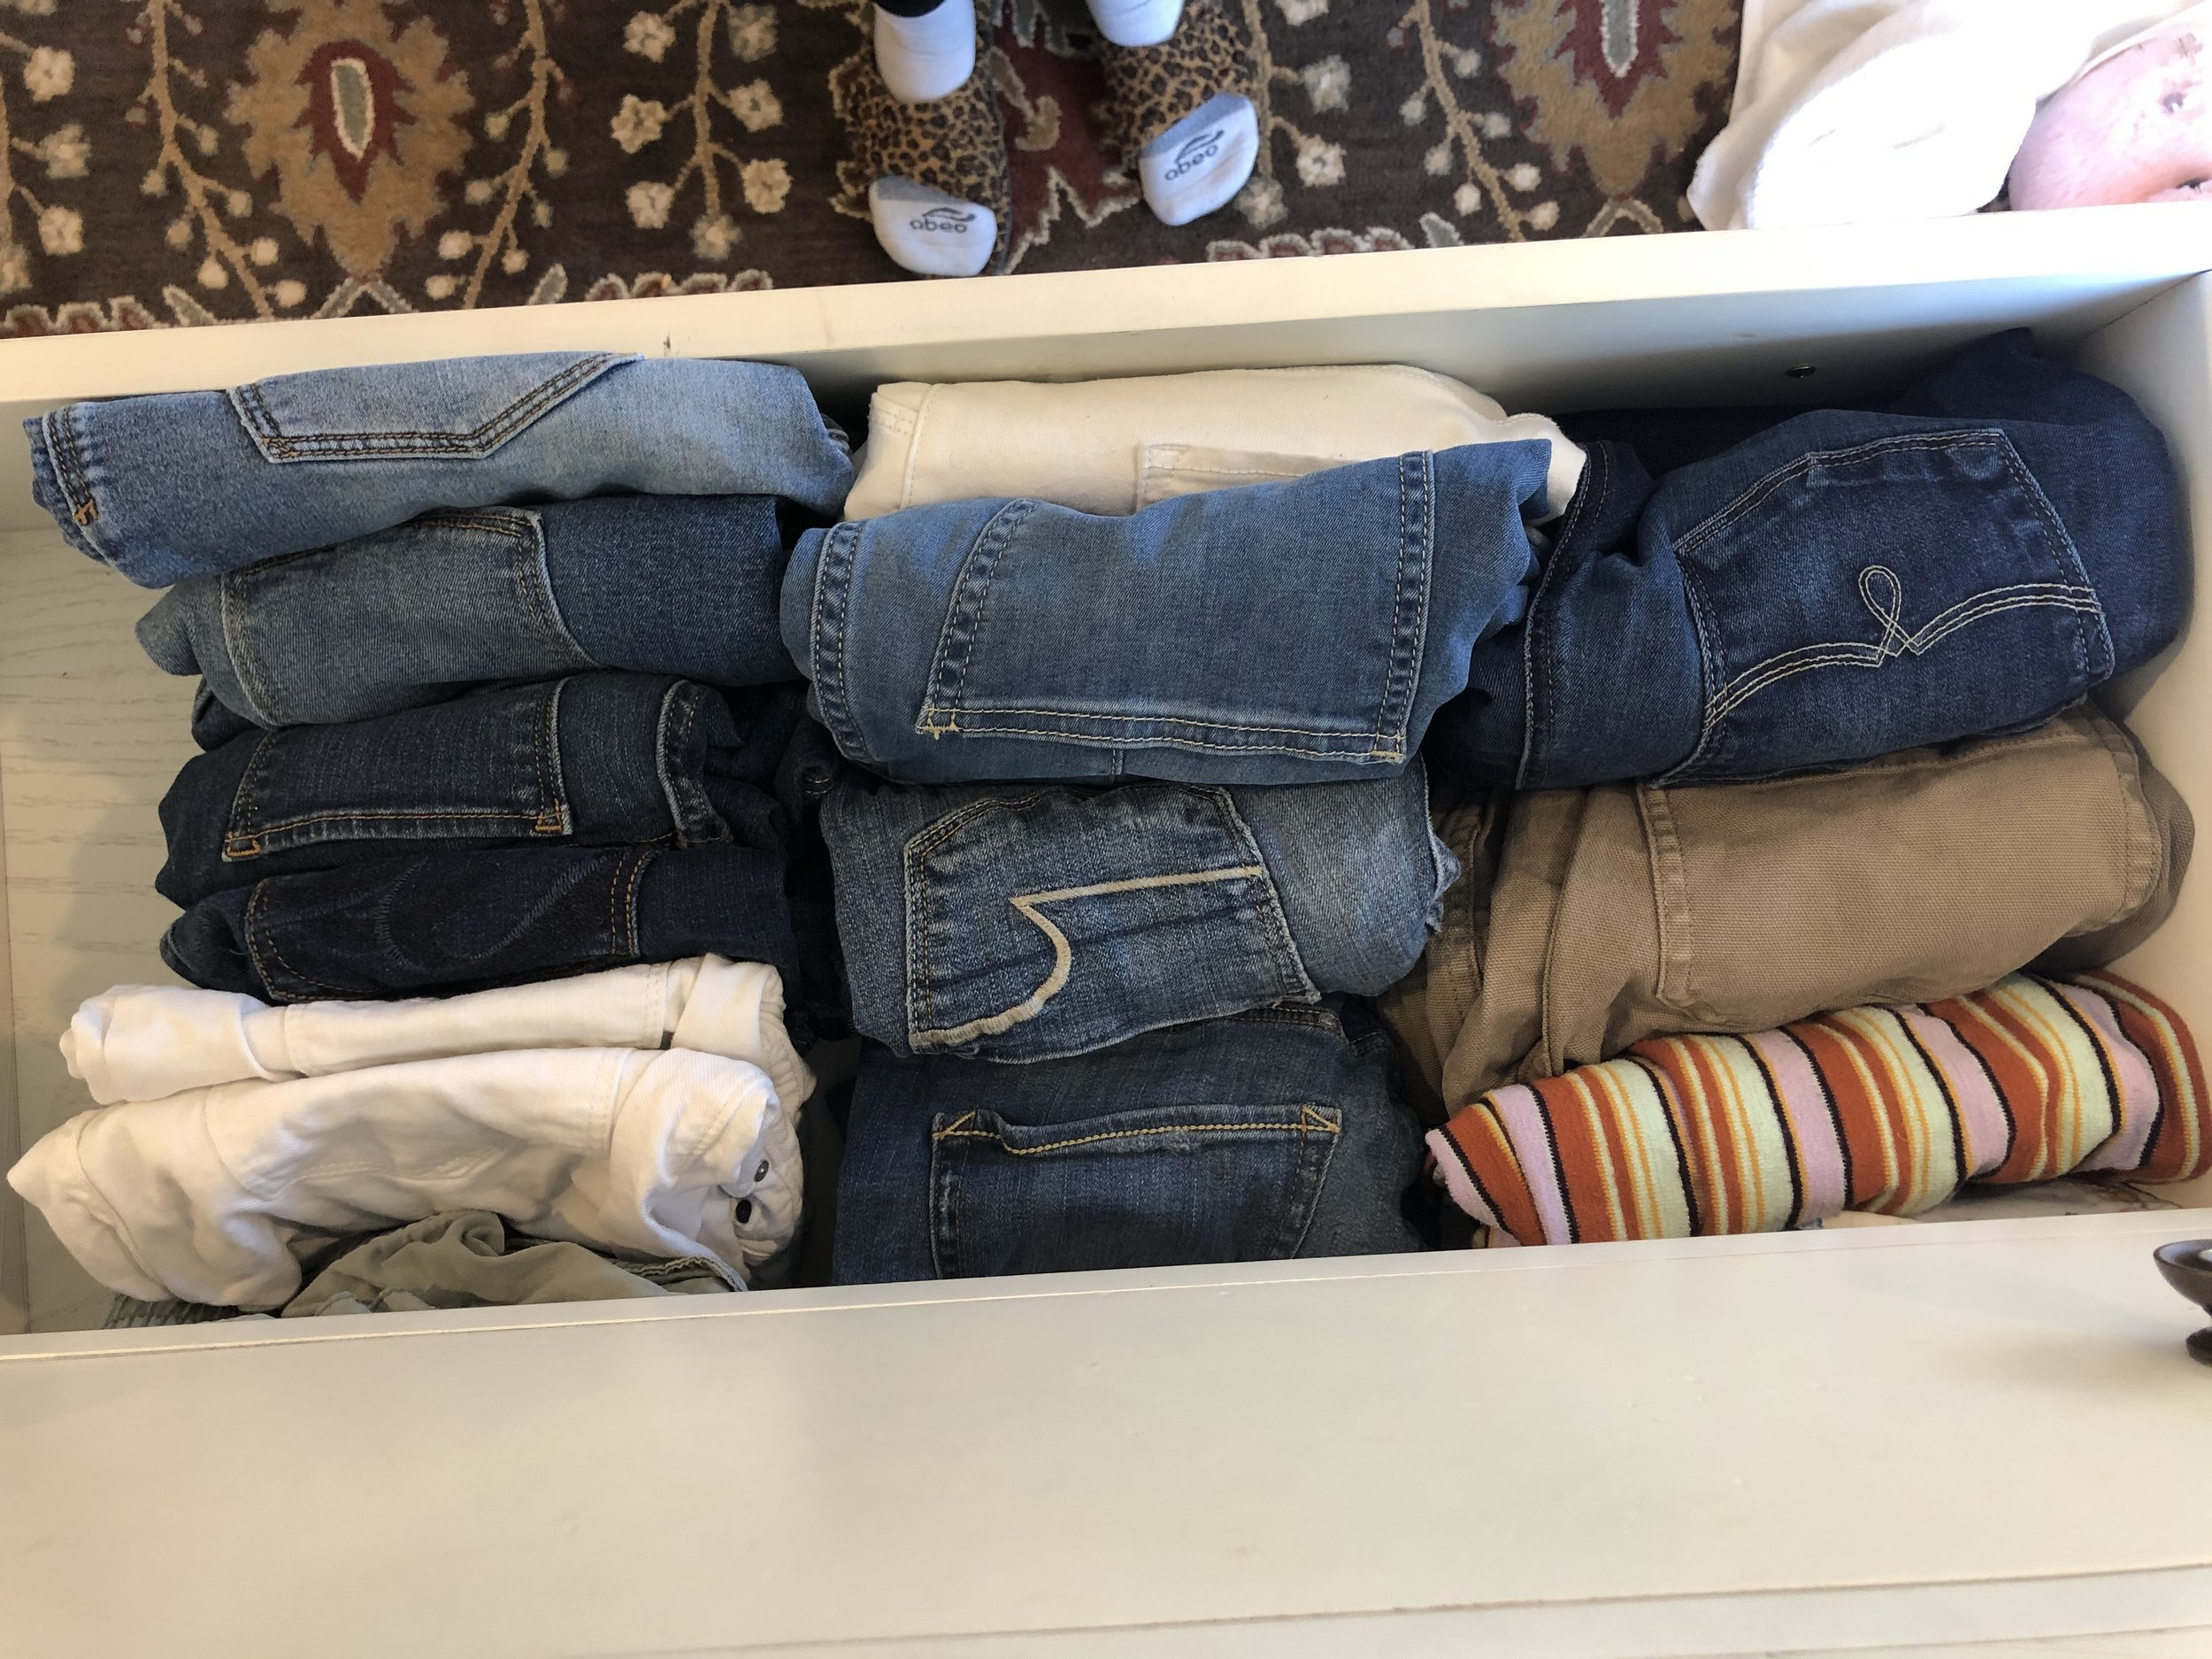 This is a pants drawer from above, and also my feet! They keep photobombing me!